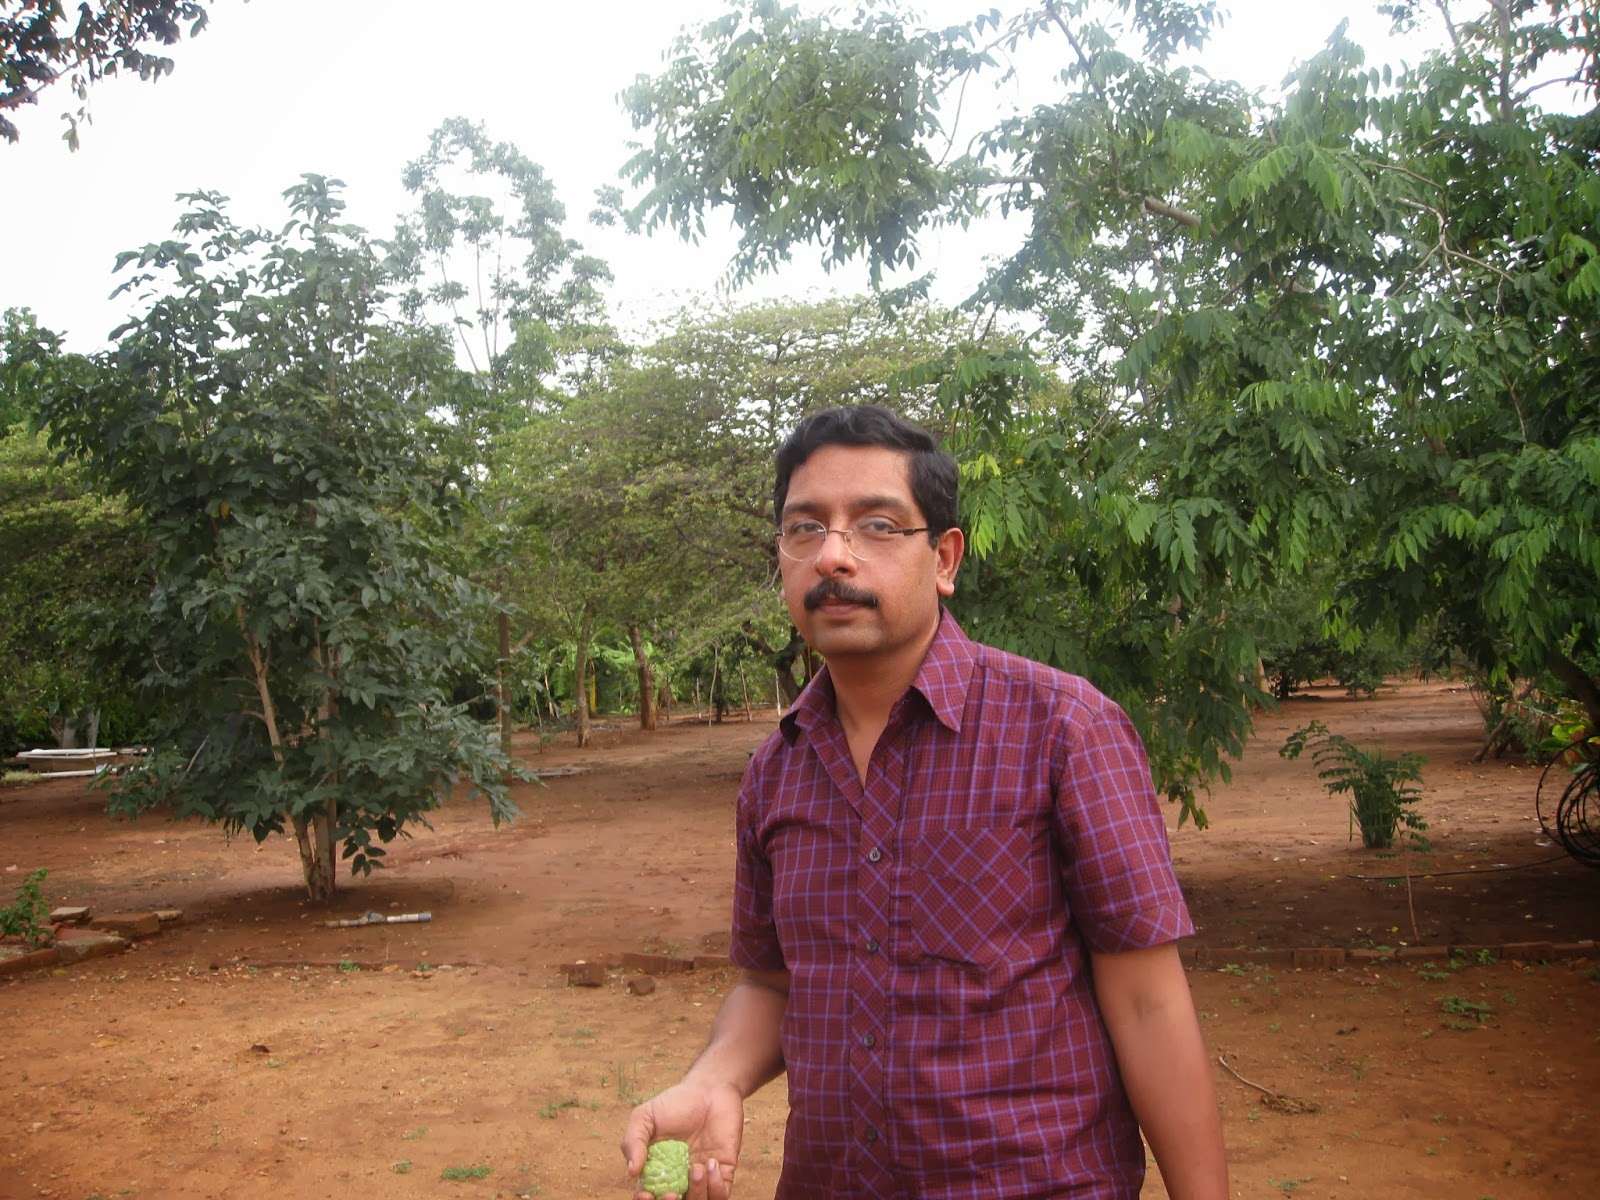 Couple Of Months Back I Wasing Out Of A Darshini (clean  Self Service  Stand And Eat Vegetarian Restaurantsmon In Bangalore) In Jayanagar,